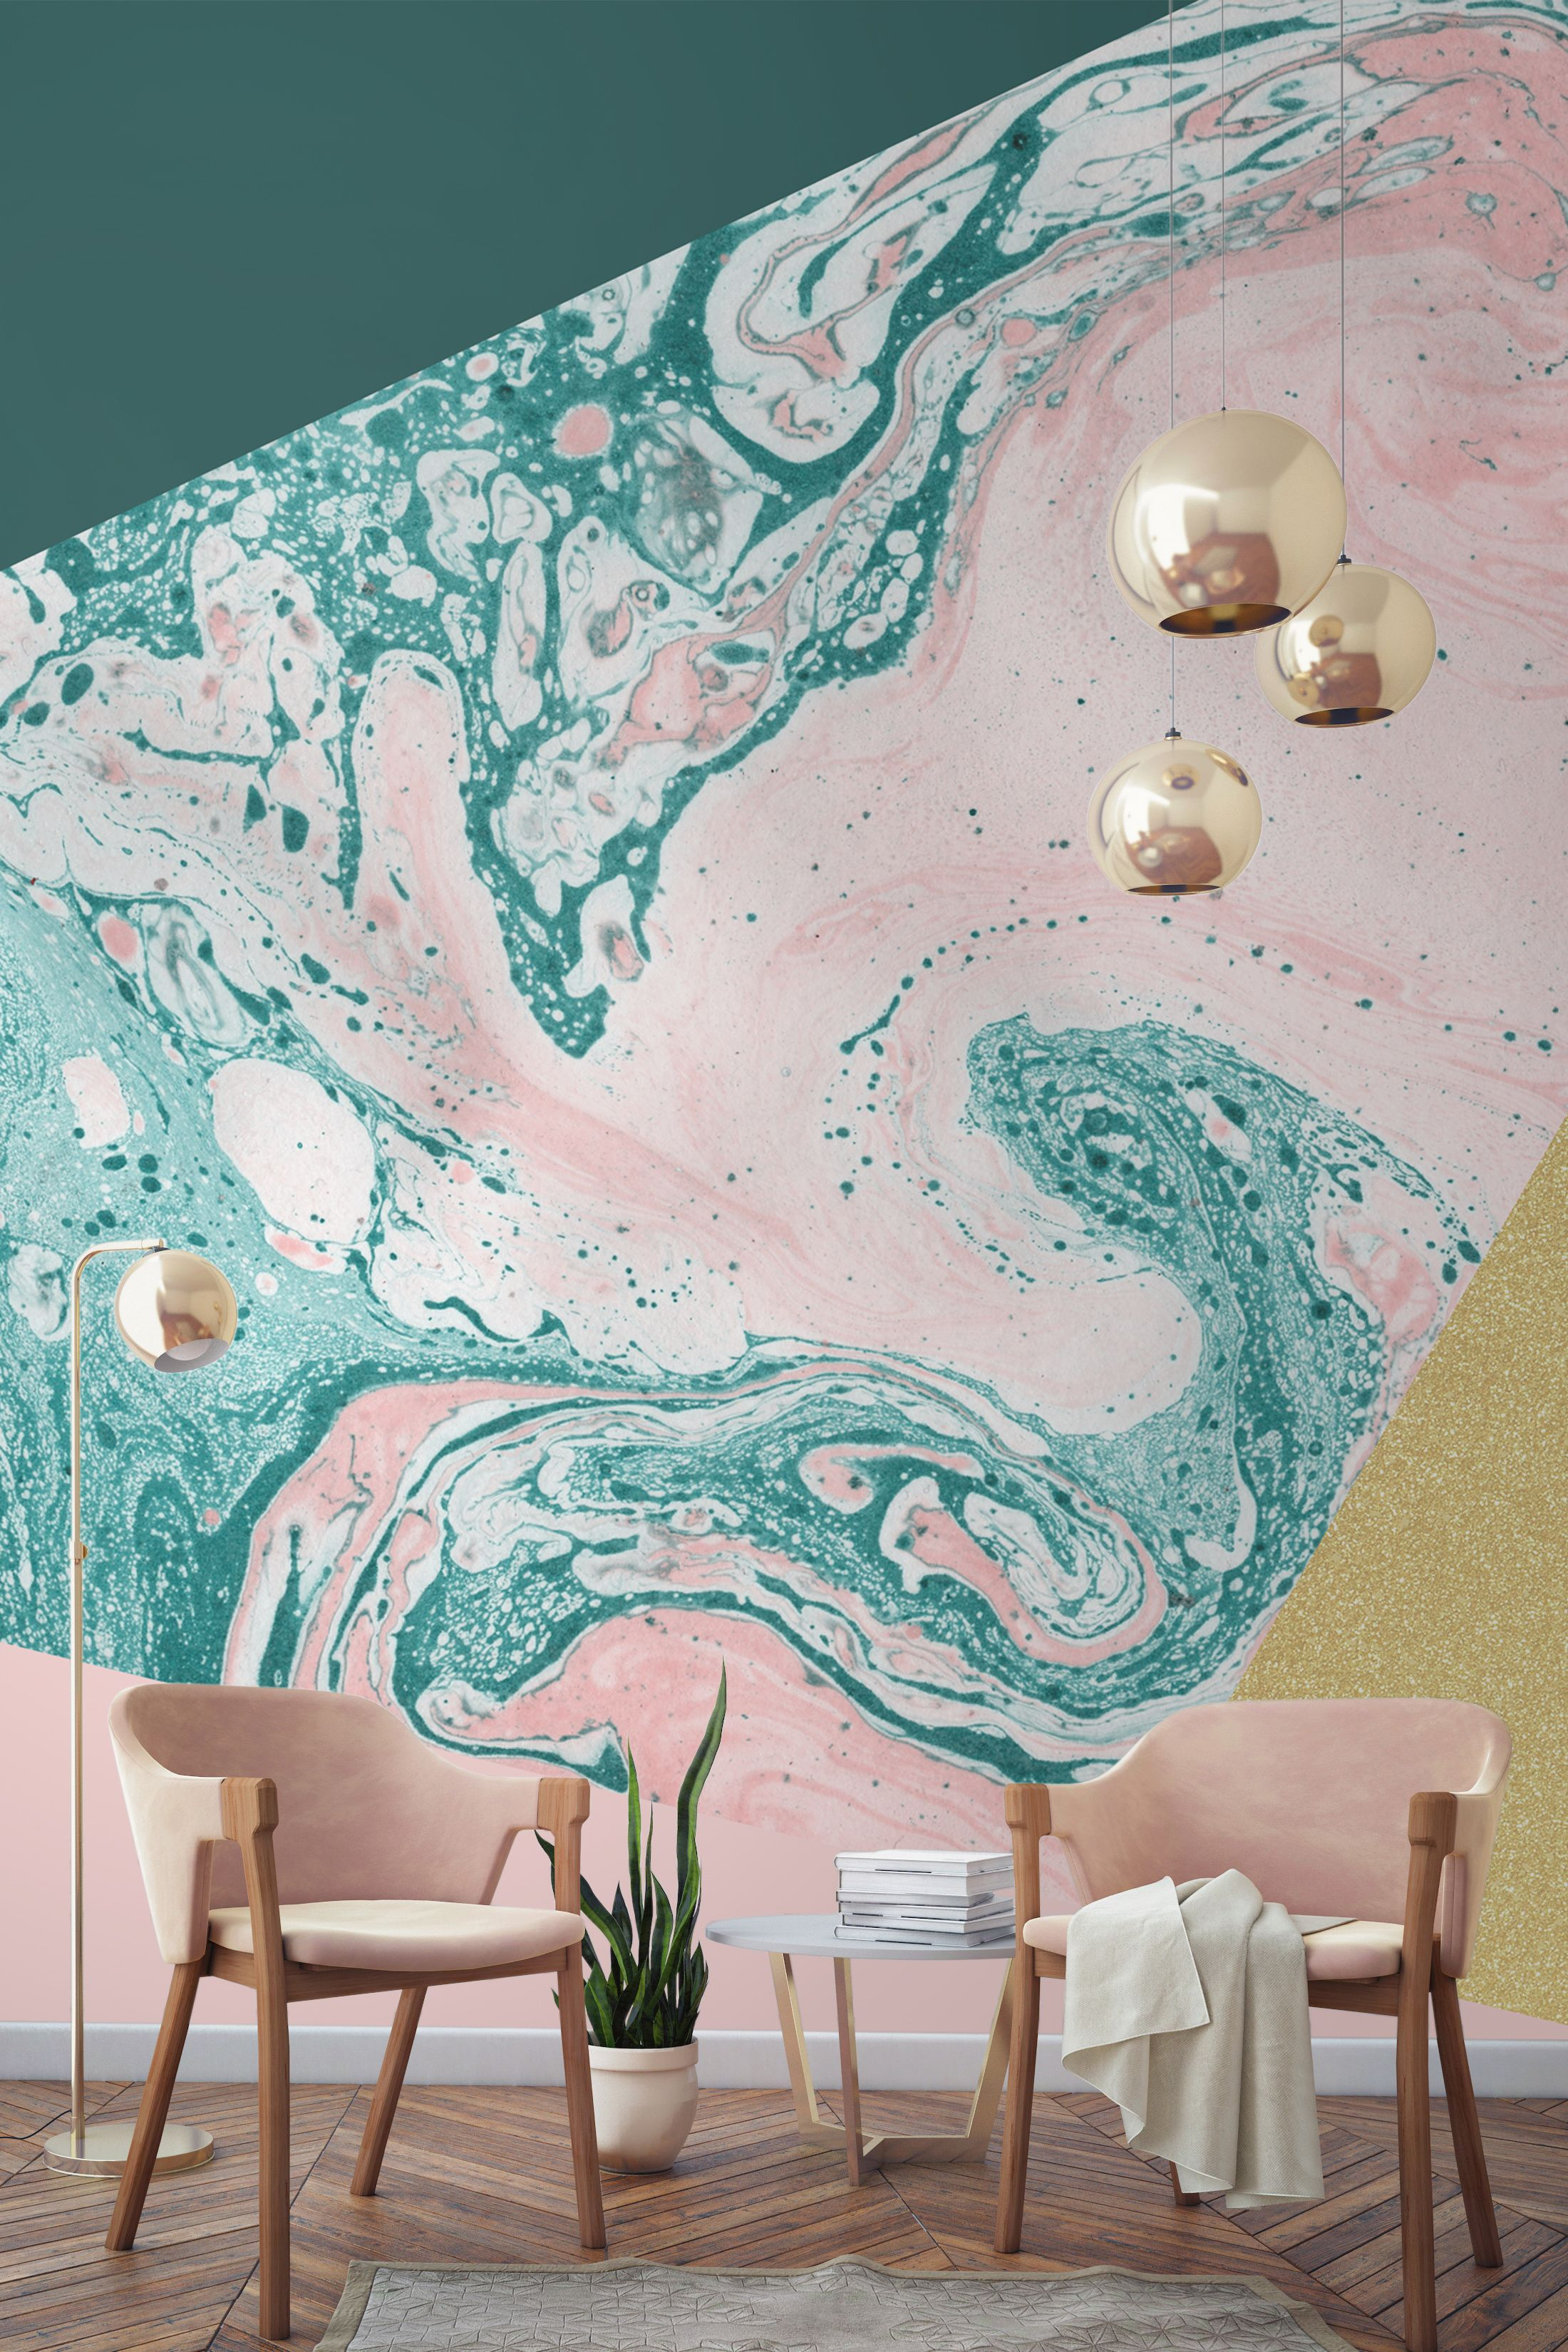 chair design wallpaper covers for hire auckland in love with this blush pink marble and gold combination forest green melts into a pastel giving stark yet intriguing contrast of colours the glittering